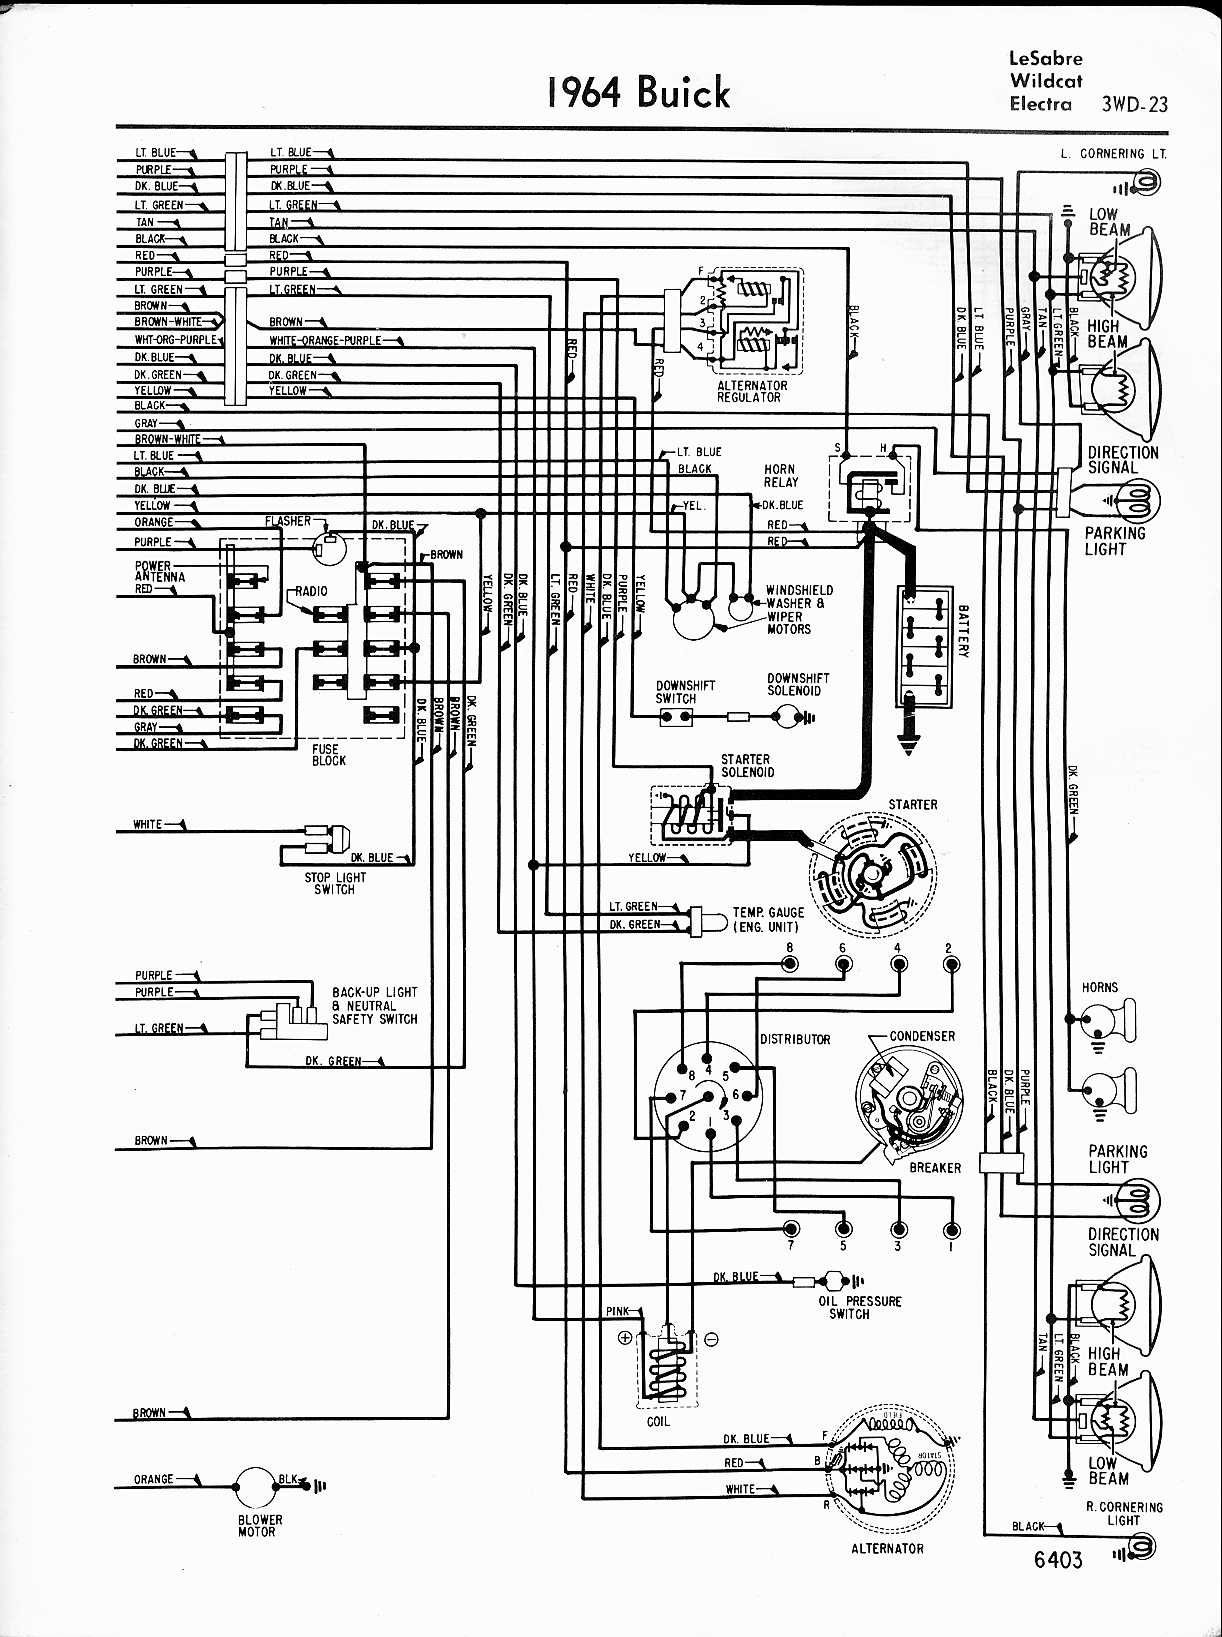 1985 Buick Century Wiring Diagrams Library. 1964 Lesabre Wildcat Electra Right Half Buick Wiring Diagrams. Buick. 1998 Buick Regal Electrical Diagrams At Scoala.co